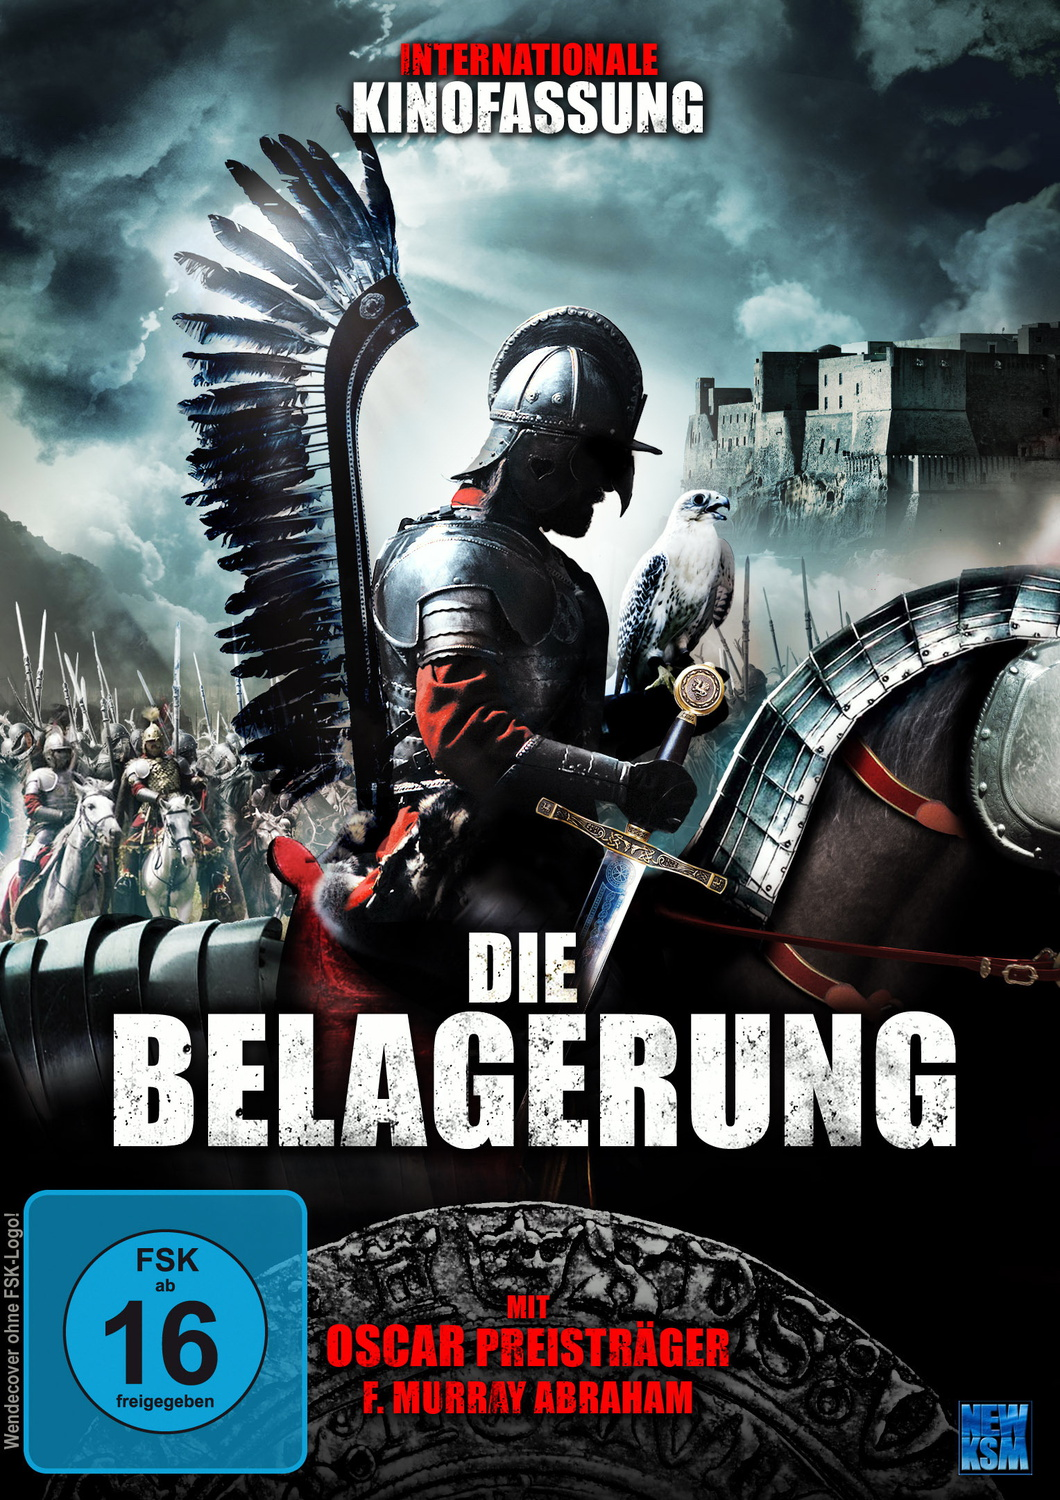 Die Belagerung [Internationale Kinofassung]